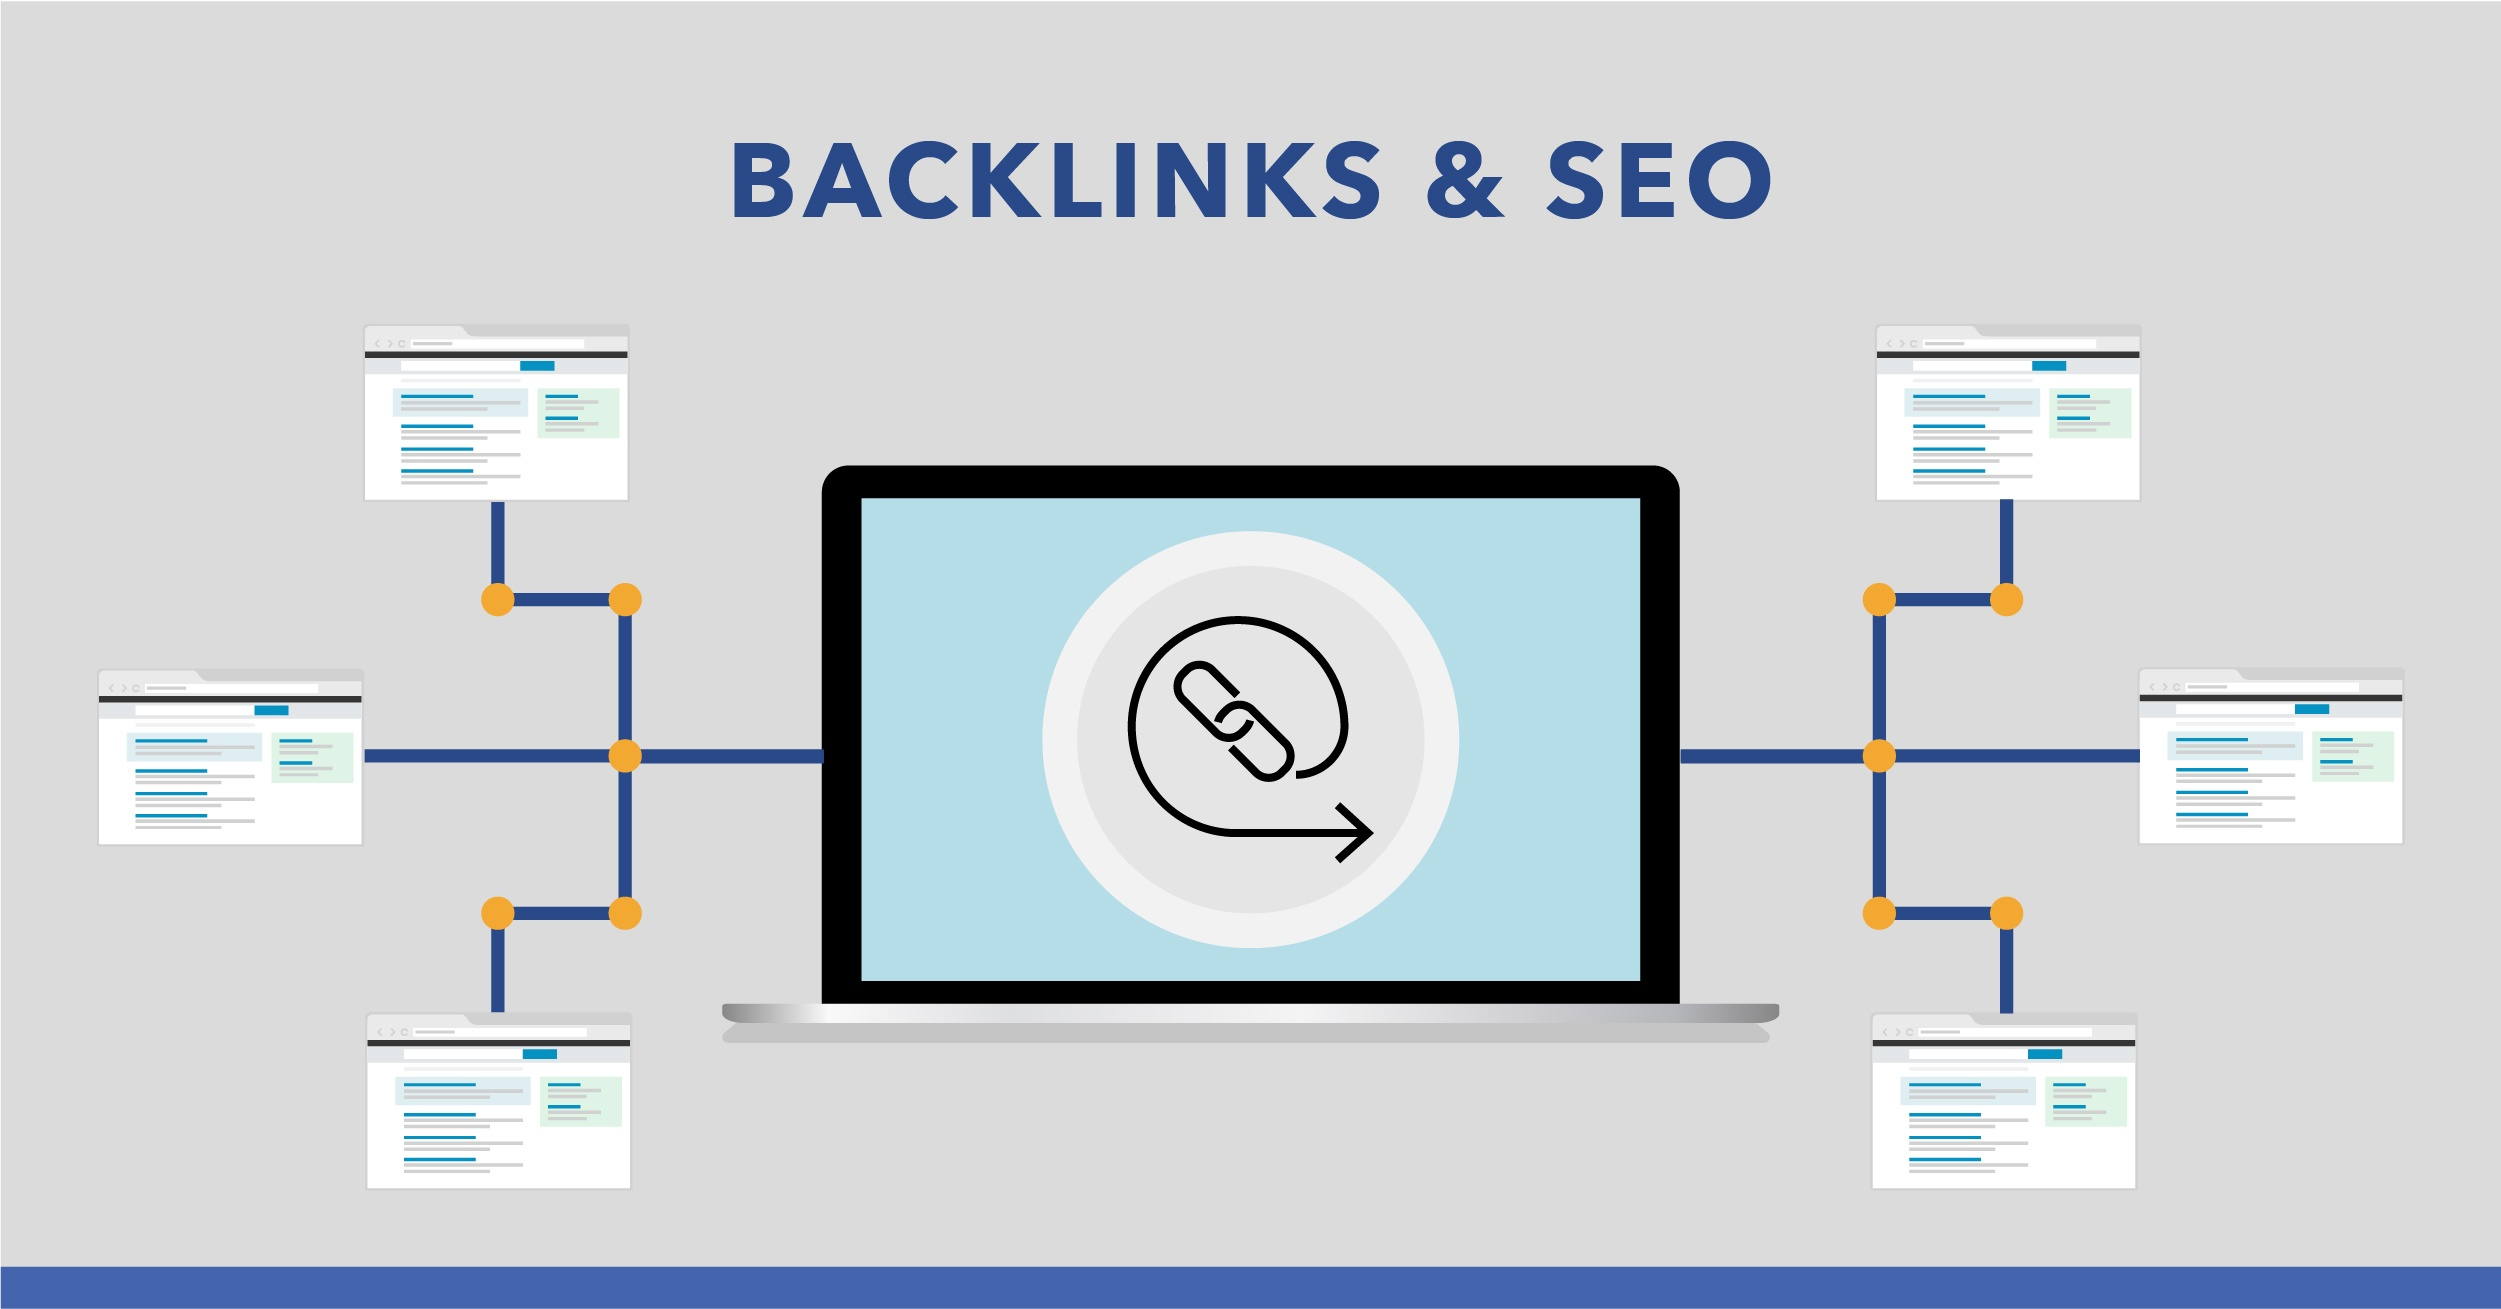 What are Backlinks and How Do They Work? - Featured Image